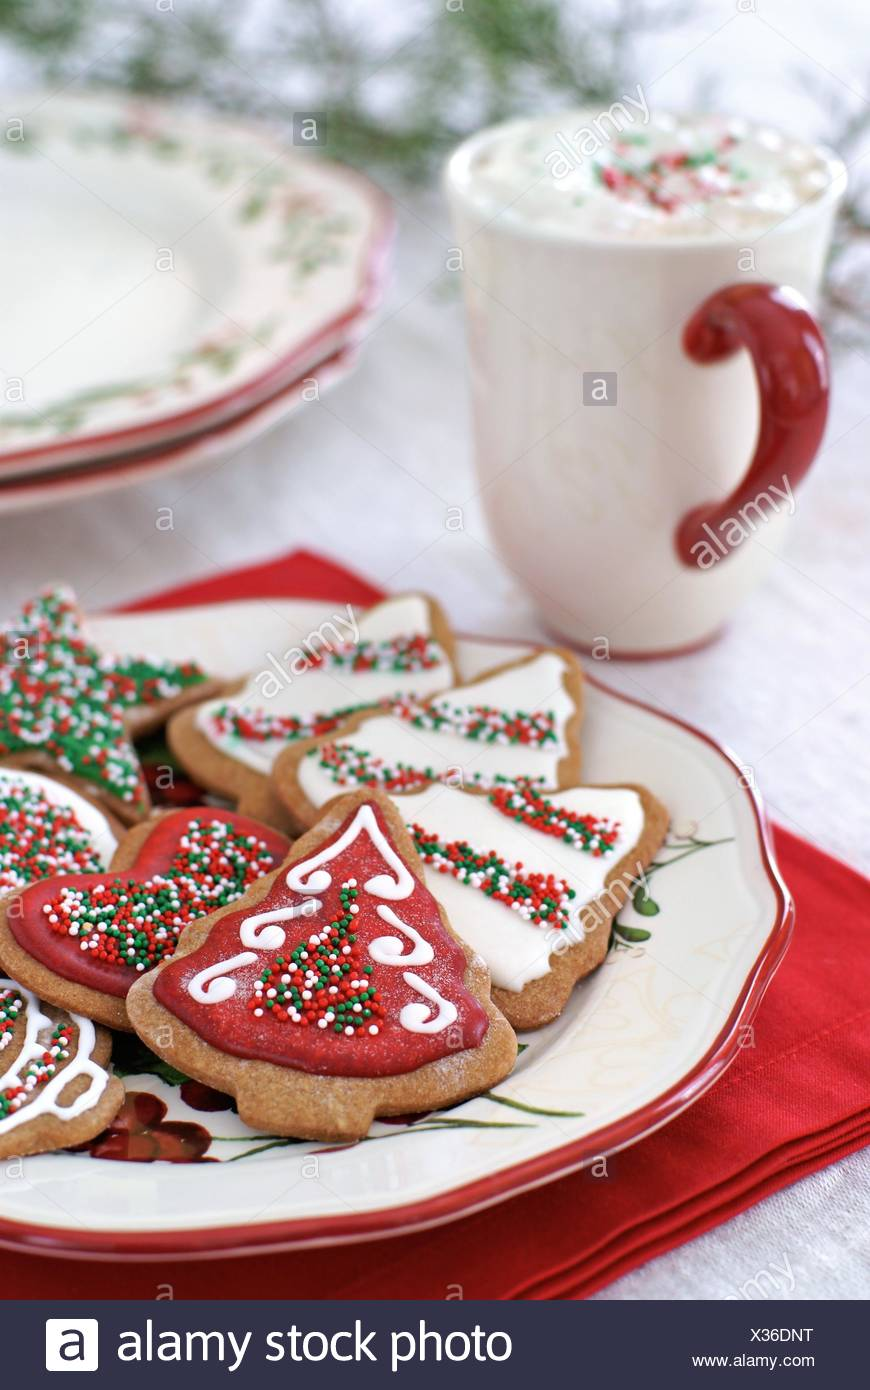 gingerbread cookies decorated for christmas with icing and sprinkles - Decorating Cookies With Sprinkles For Christmas